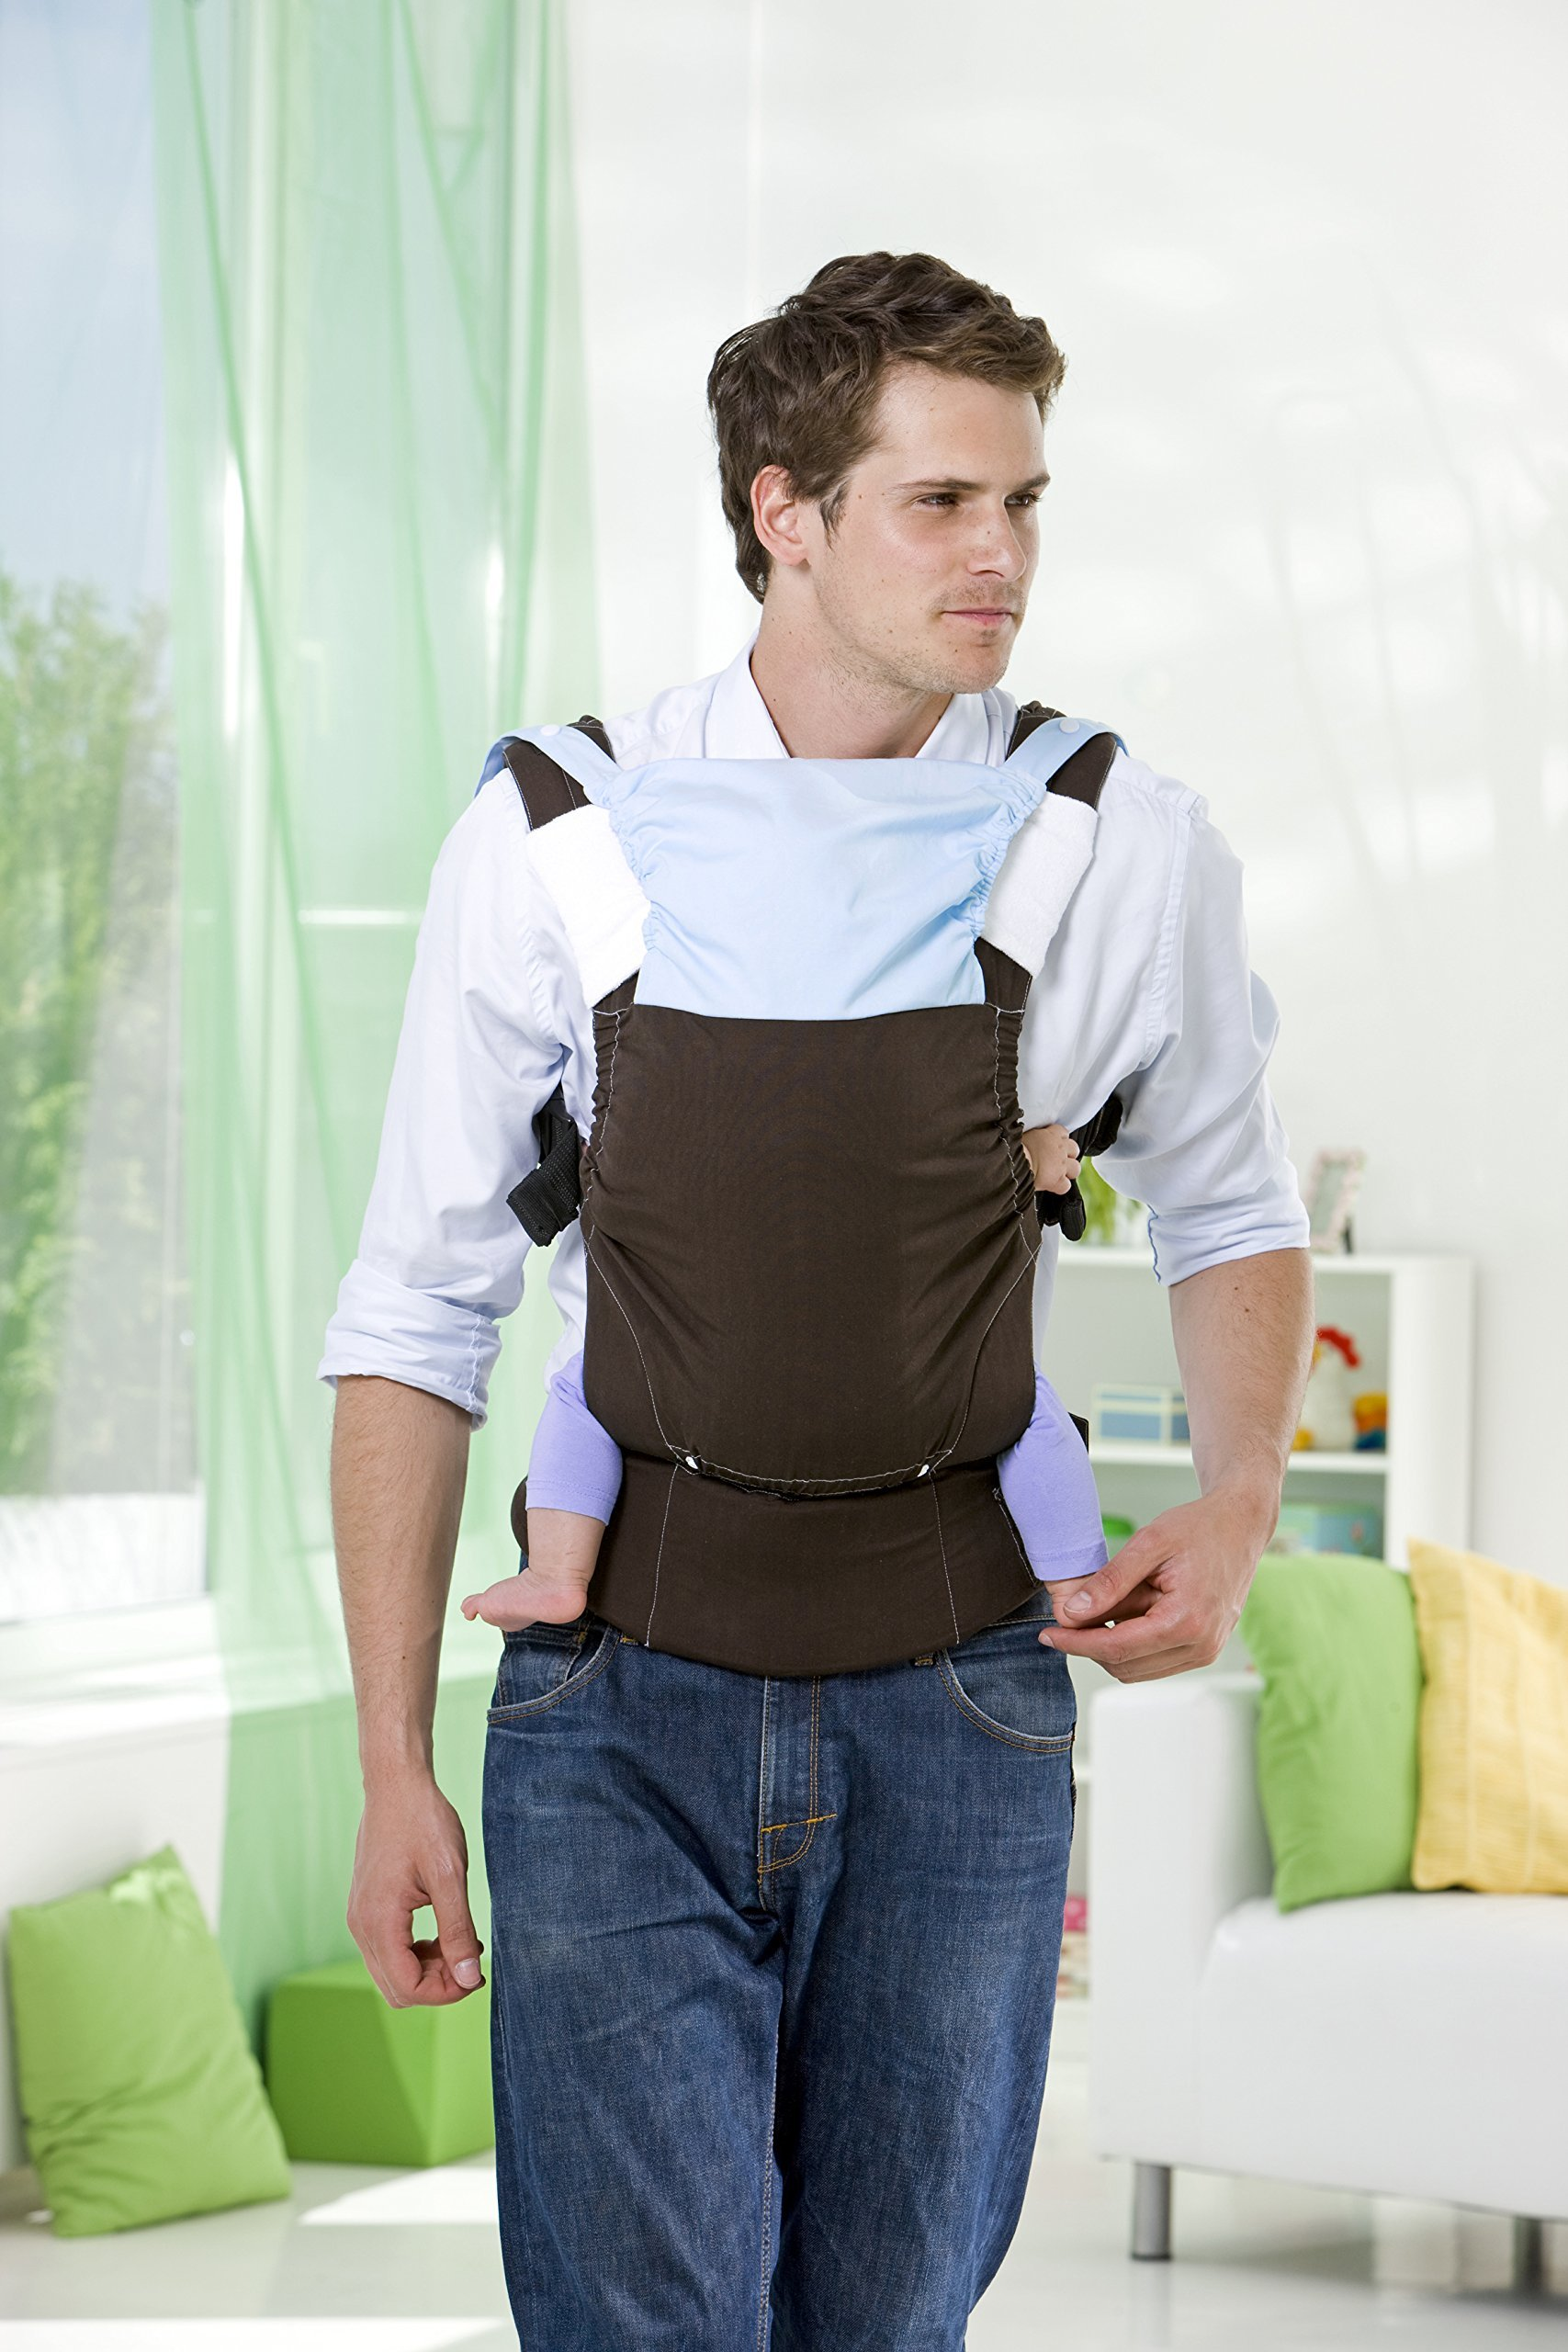 Amazonas Baby Smart Carrier - Earth AMAZONAS Waist belt length: 78 - 145 cm Flexible bridge: approx. 26 - 33 cm Load capacity: max. 3.5 - 15 kg 8